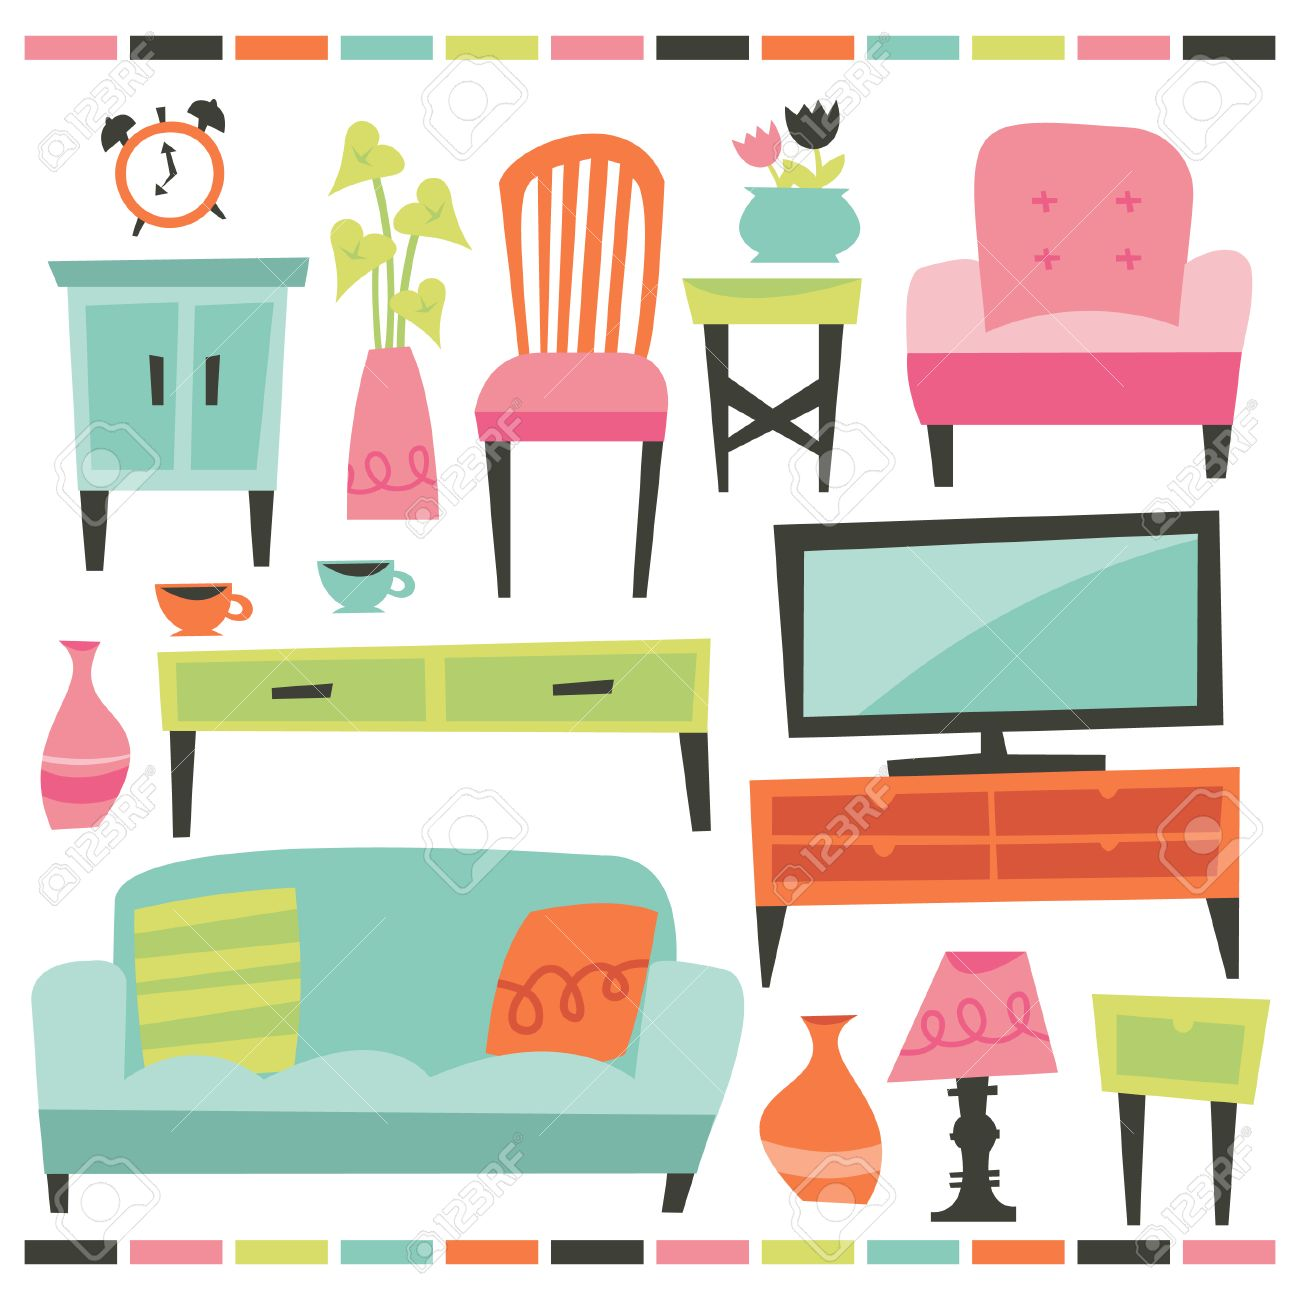 Furniture Design Elements a chic illustration of retro inspired home and living furniture